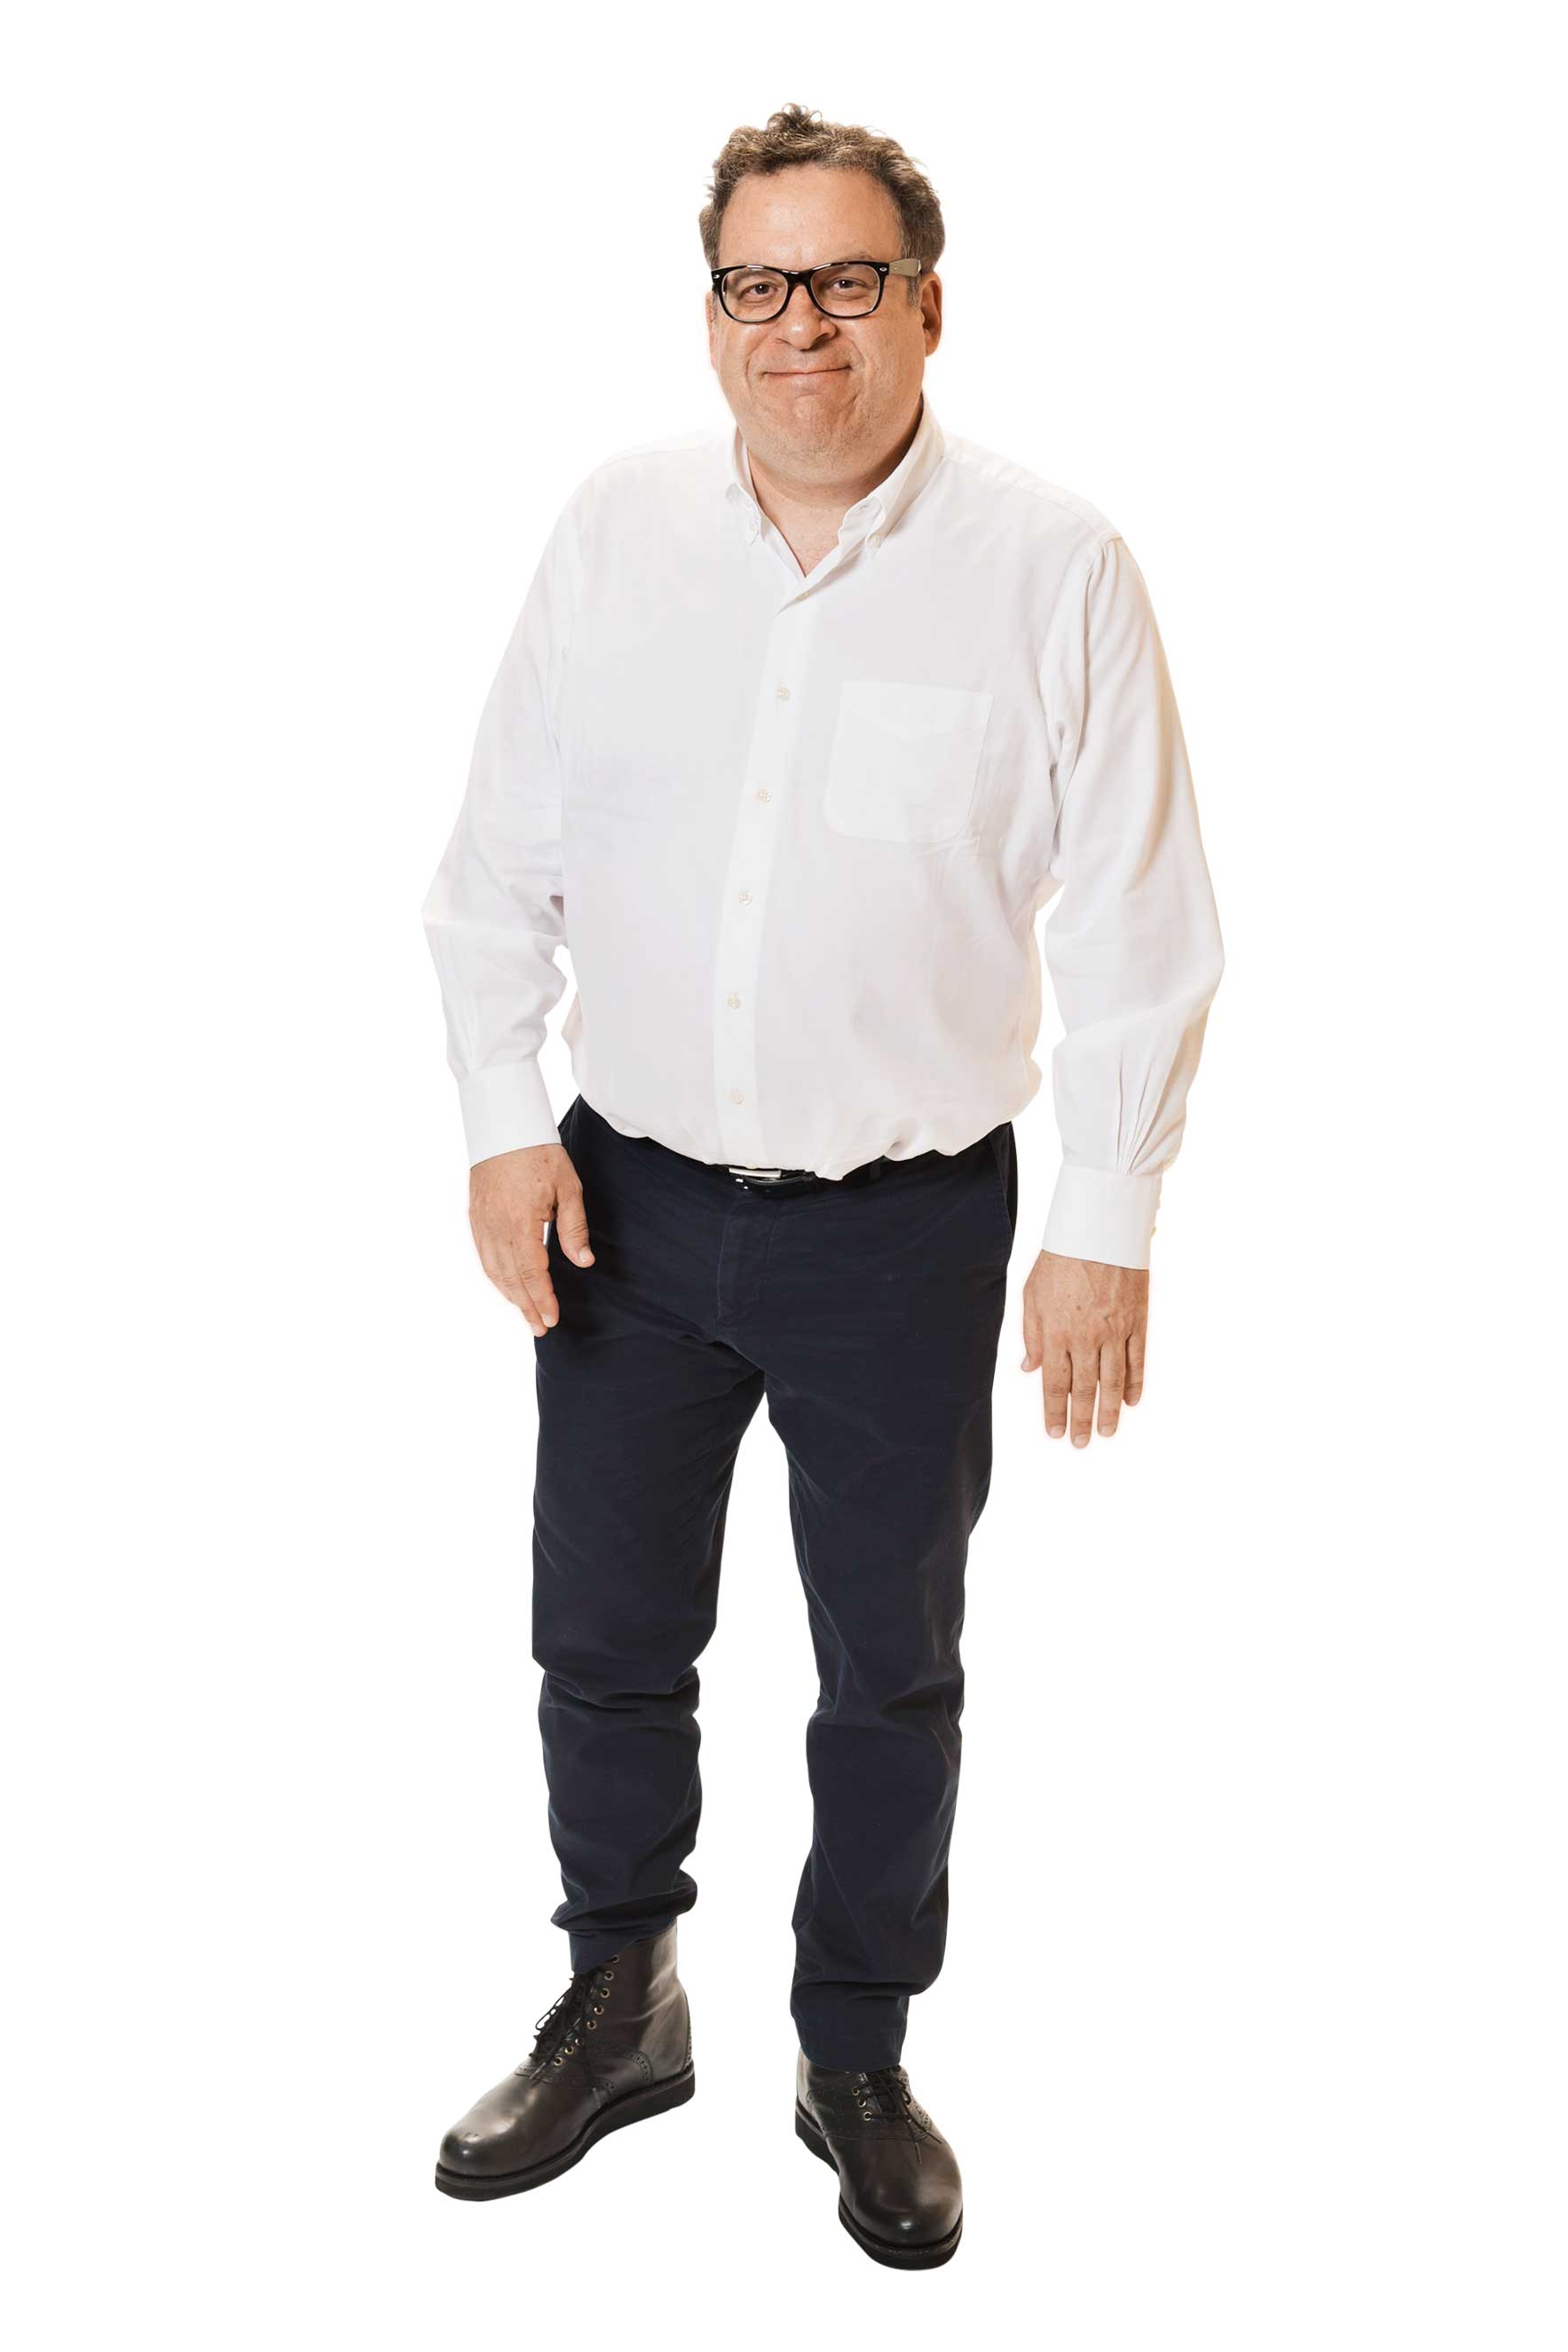 Actor Jeff Garlin poses for a portraits at the Beverly Hills Ballroom of The Beverly Hilton in Beverly Hills.